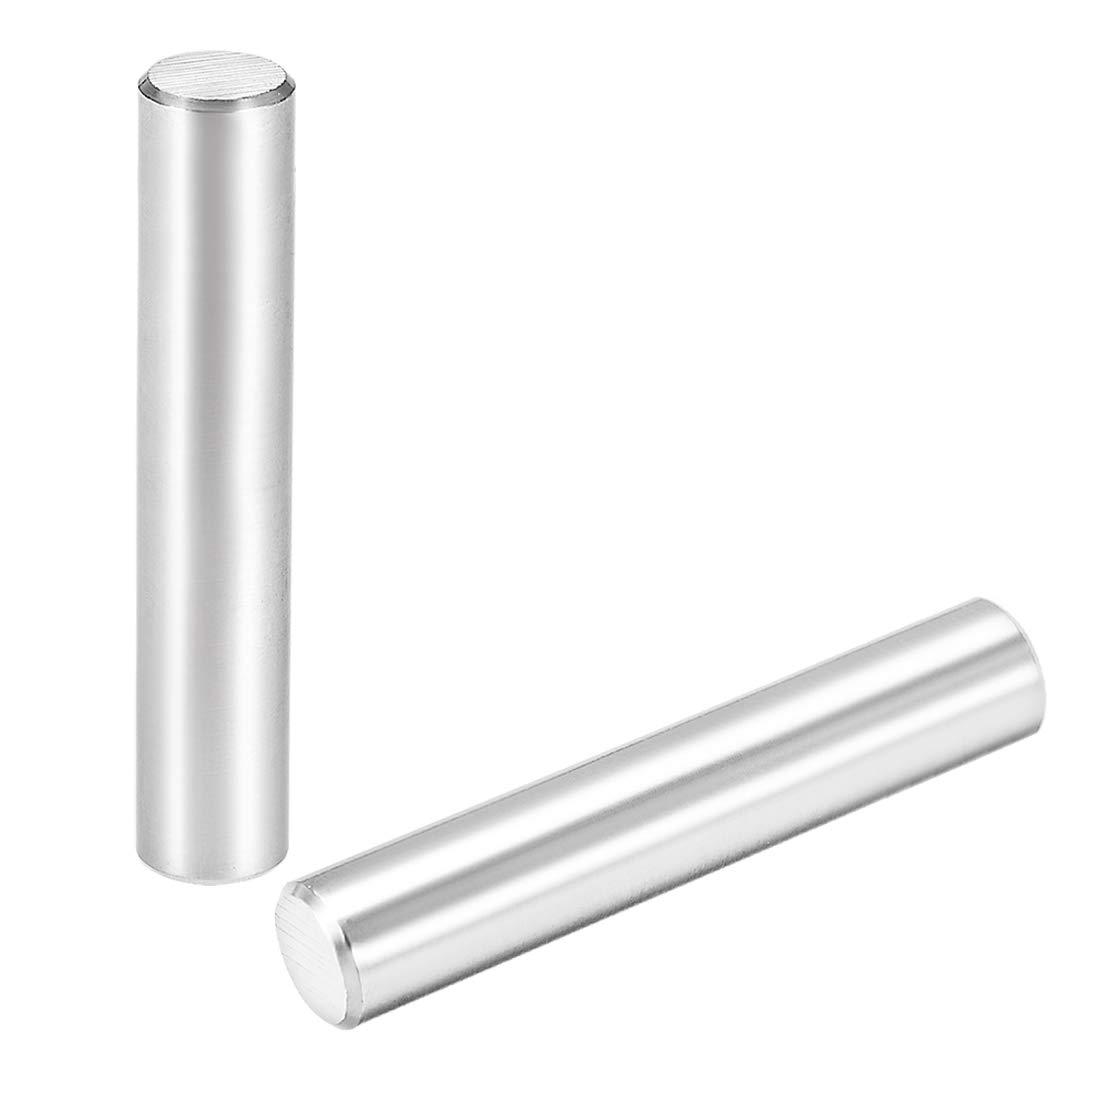 """uxcell 12 x 70mm(Approx 15/32"""") Dowel Pin 304 Stainless Steel Wood Bunk Bed Dowel Pins Shelf Pegs Support Shelves 2Pcs"""